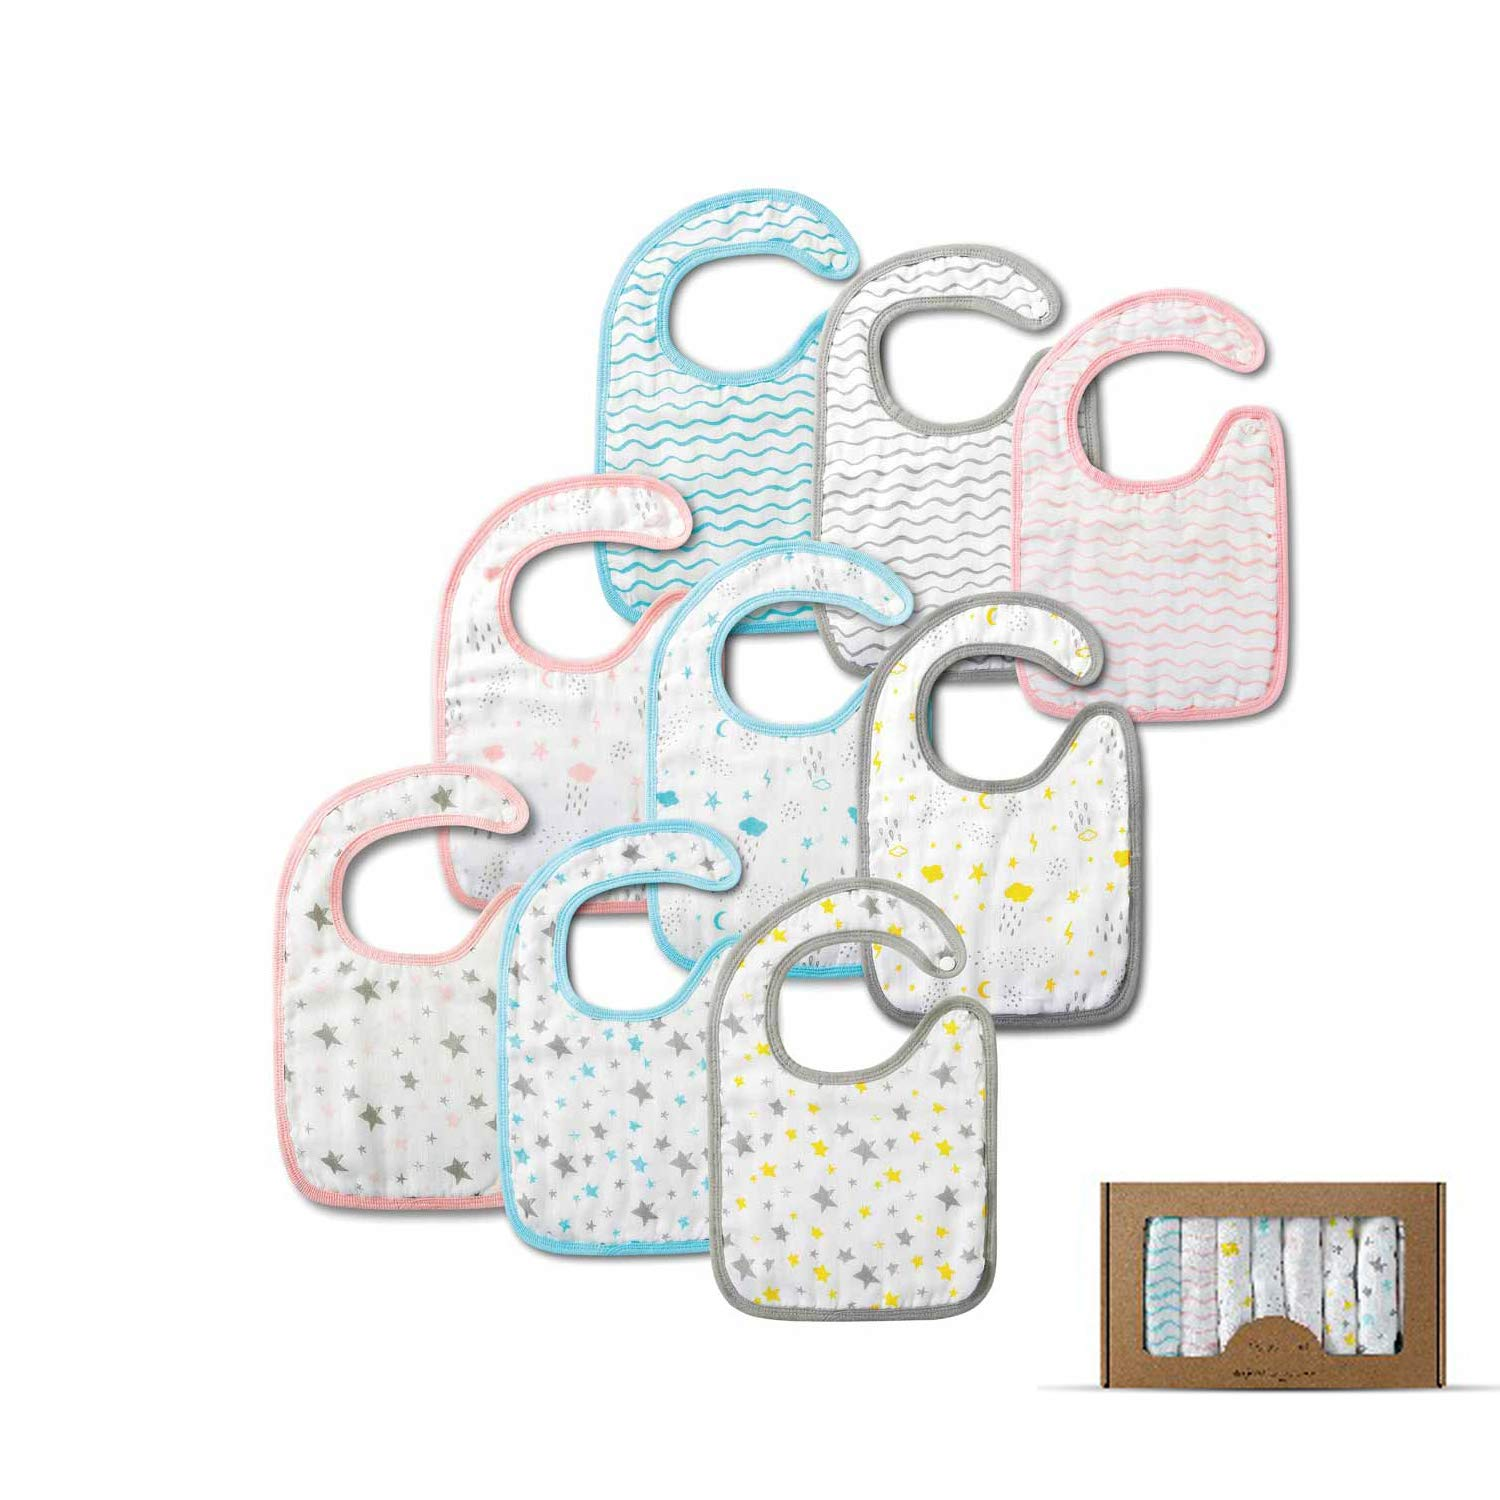 9 Pieces Extra Large Muslin Baby Bibs, 8 Layers 100% Cotton Muslin Baby Shower Gift Set for Drooling,Sung,Feeding and Teethiper,Absorbent Snap Button Bibs for Baby Boys,Girls